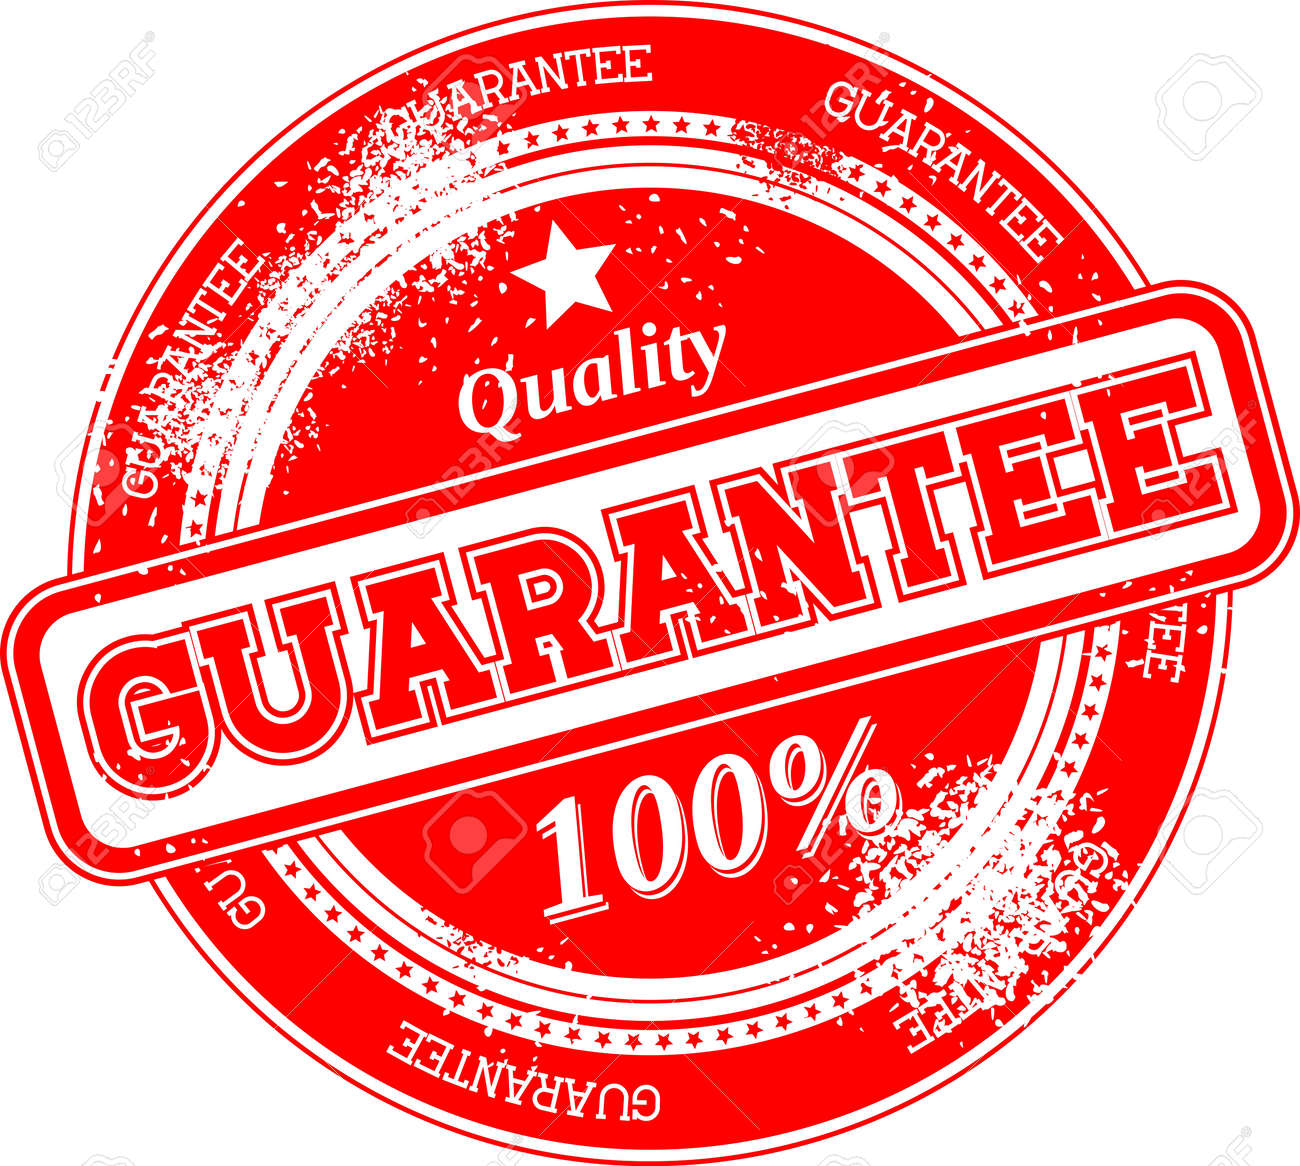 guarantee grunge stamp isolated on white background Stock Vector - 22568201